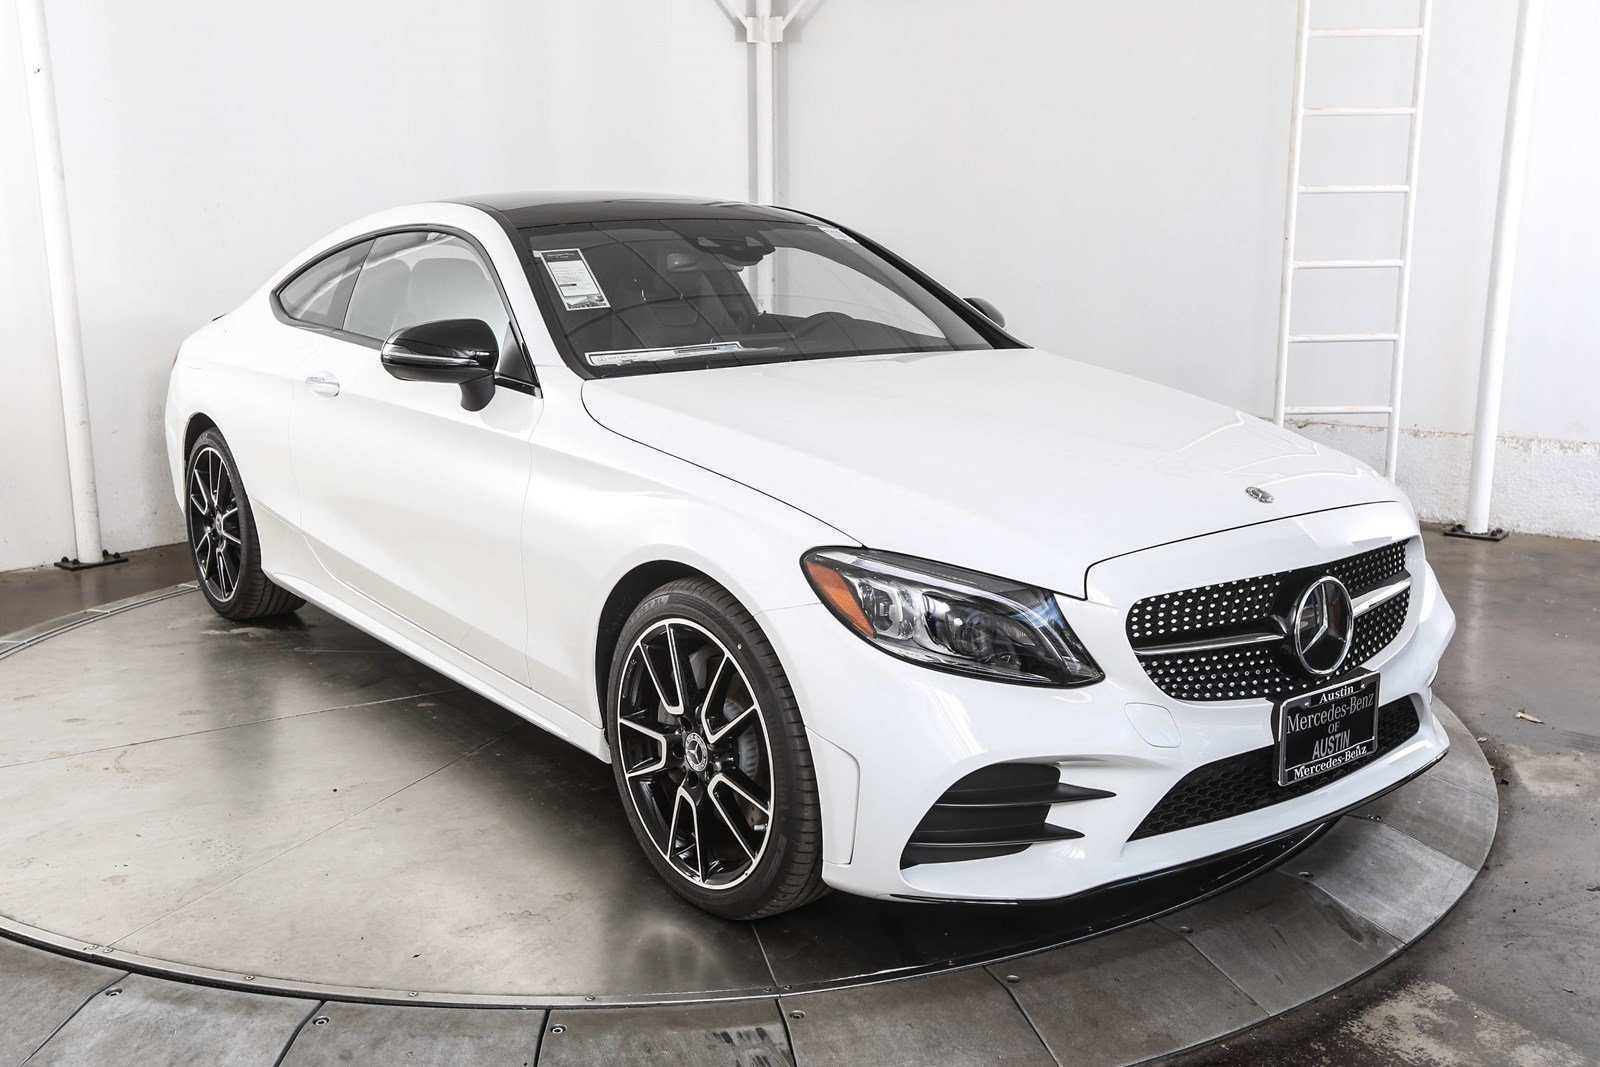 32 All New Mercedes C Class Coupe 2019 Spesification